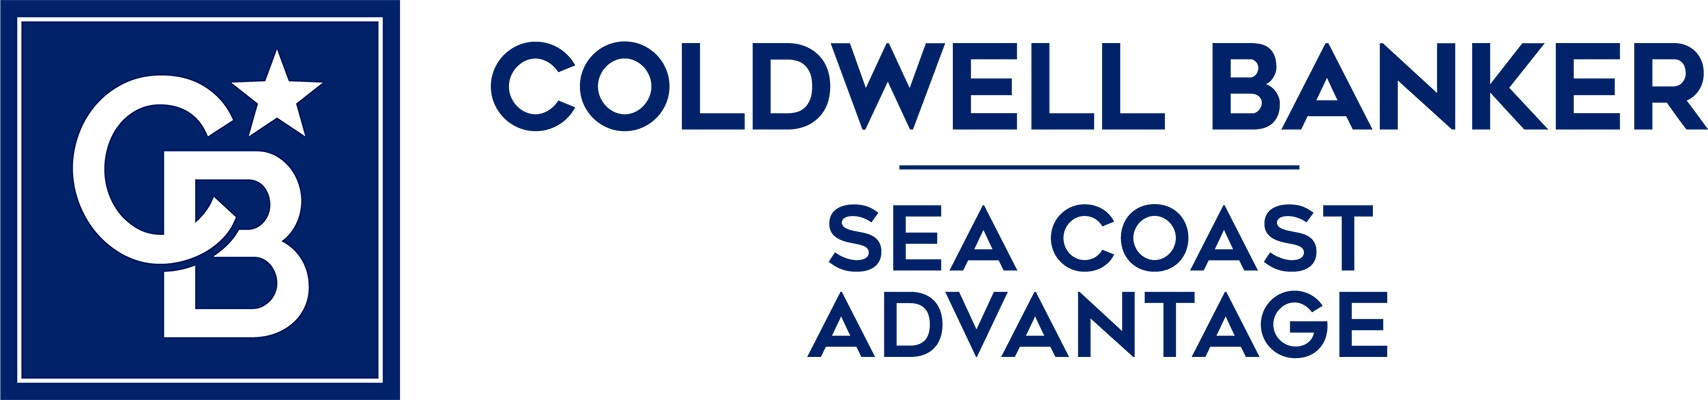 Colby Averitte - Coldwell Banker Sea Coast Advantage Realty Logo